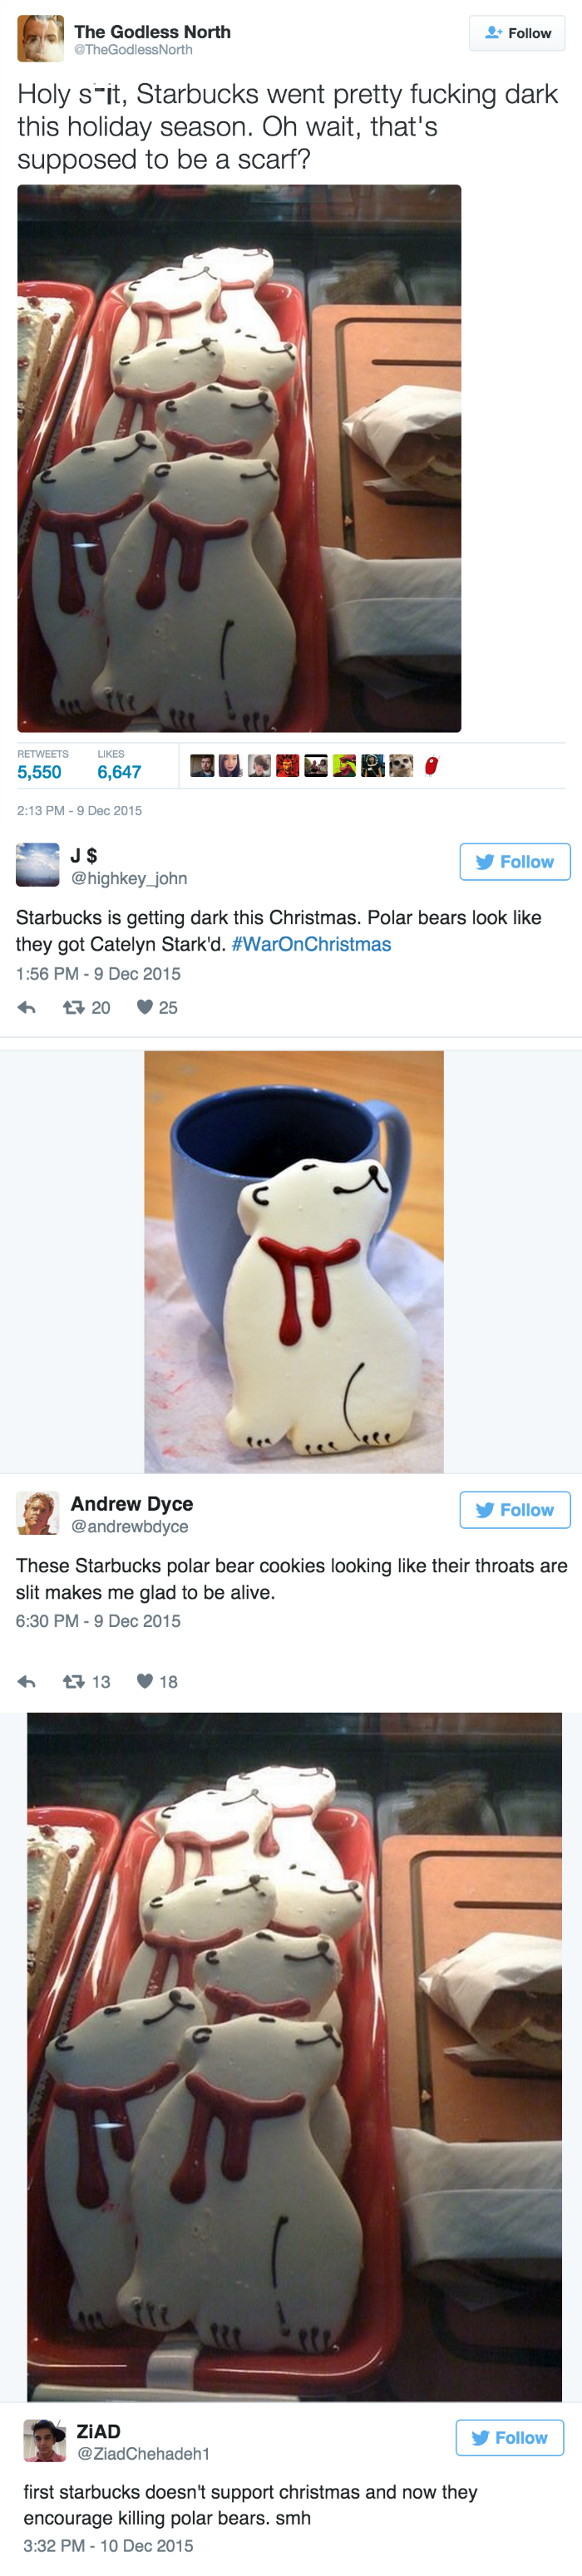 funny fail image you can't unsee Starbucks Polar Bear cookies with slit throats